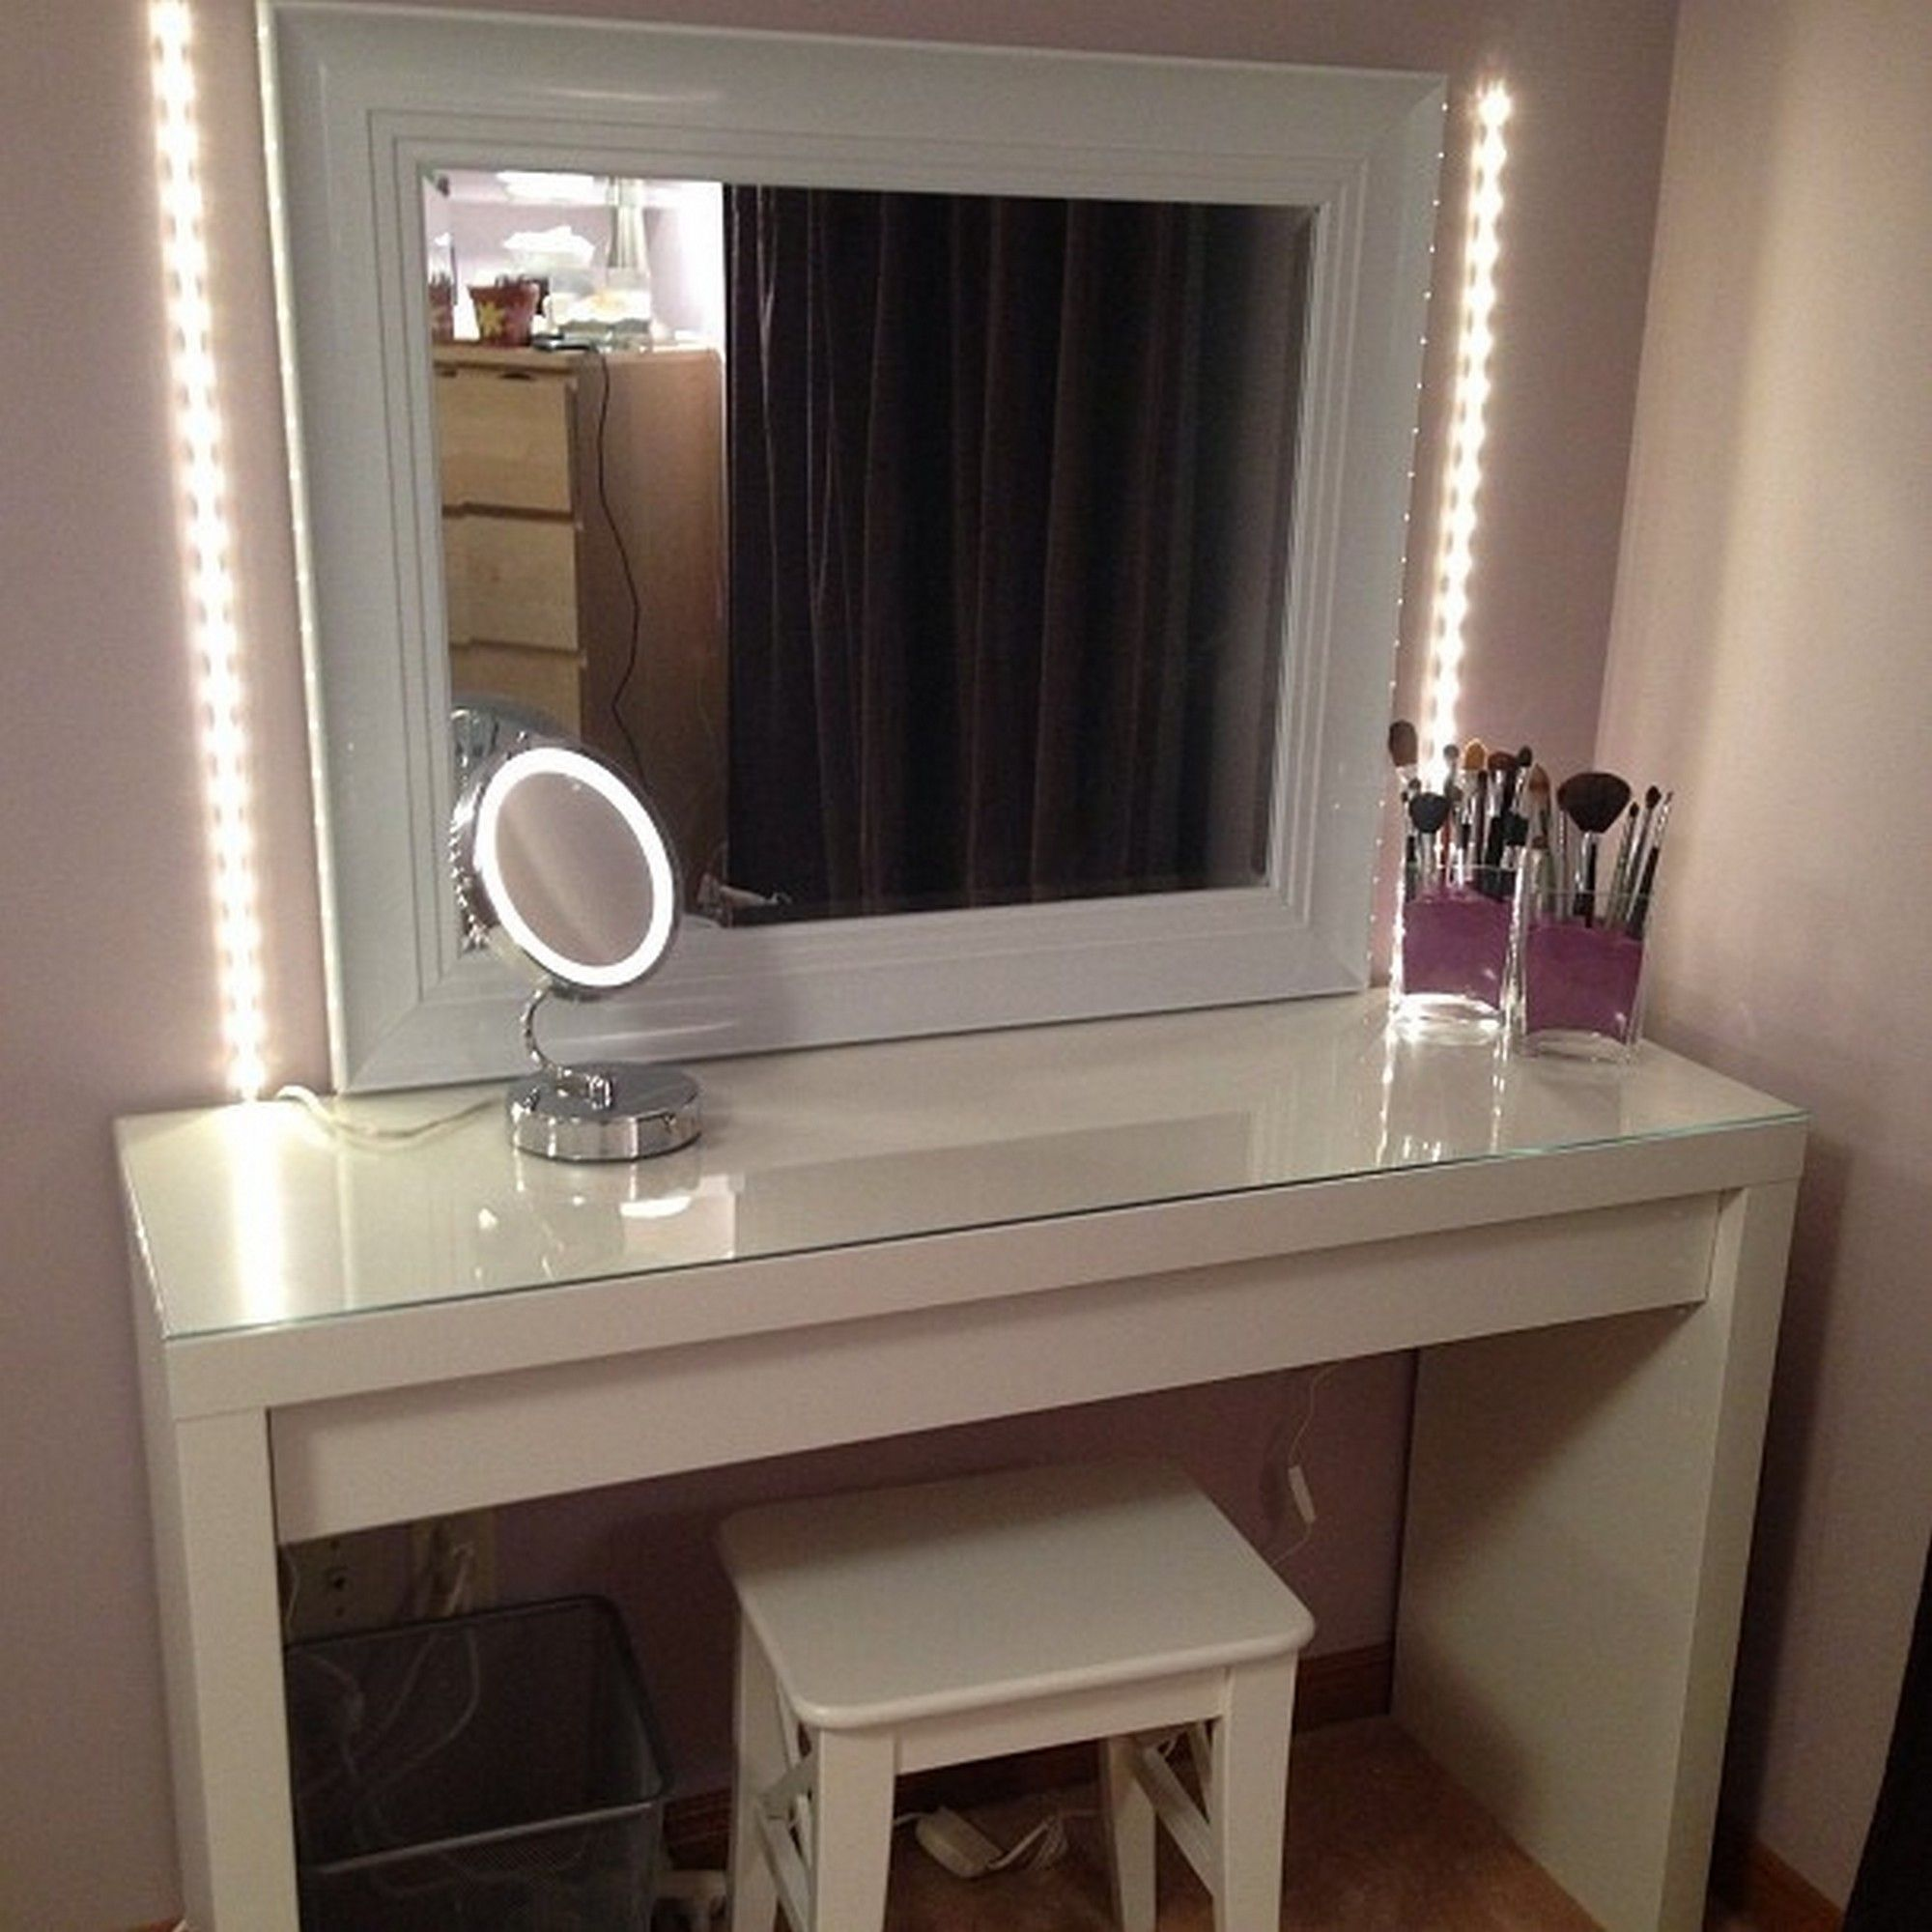 Furniture  DIY White Makeup Table With Square Mirror And Chair Show Perfect Beauty in Vanity LightingIkea